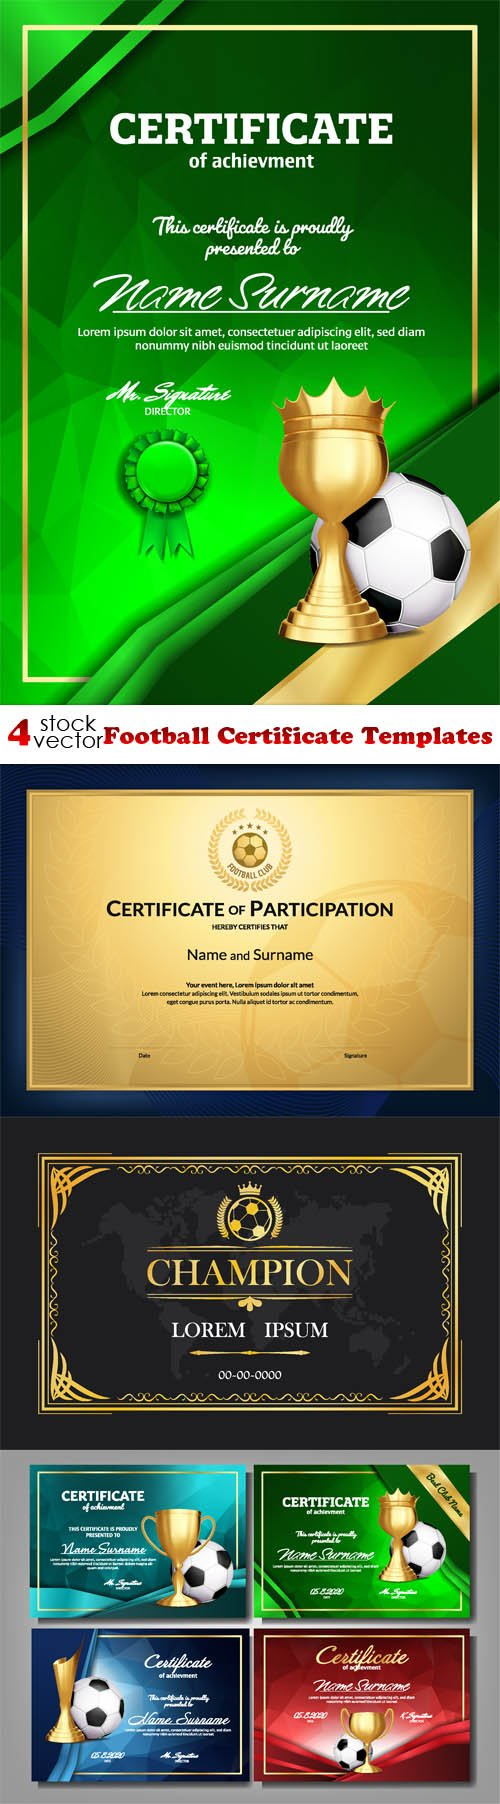 Vectors - Football Certificate Templates